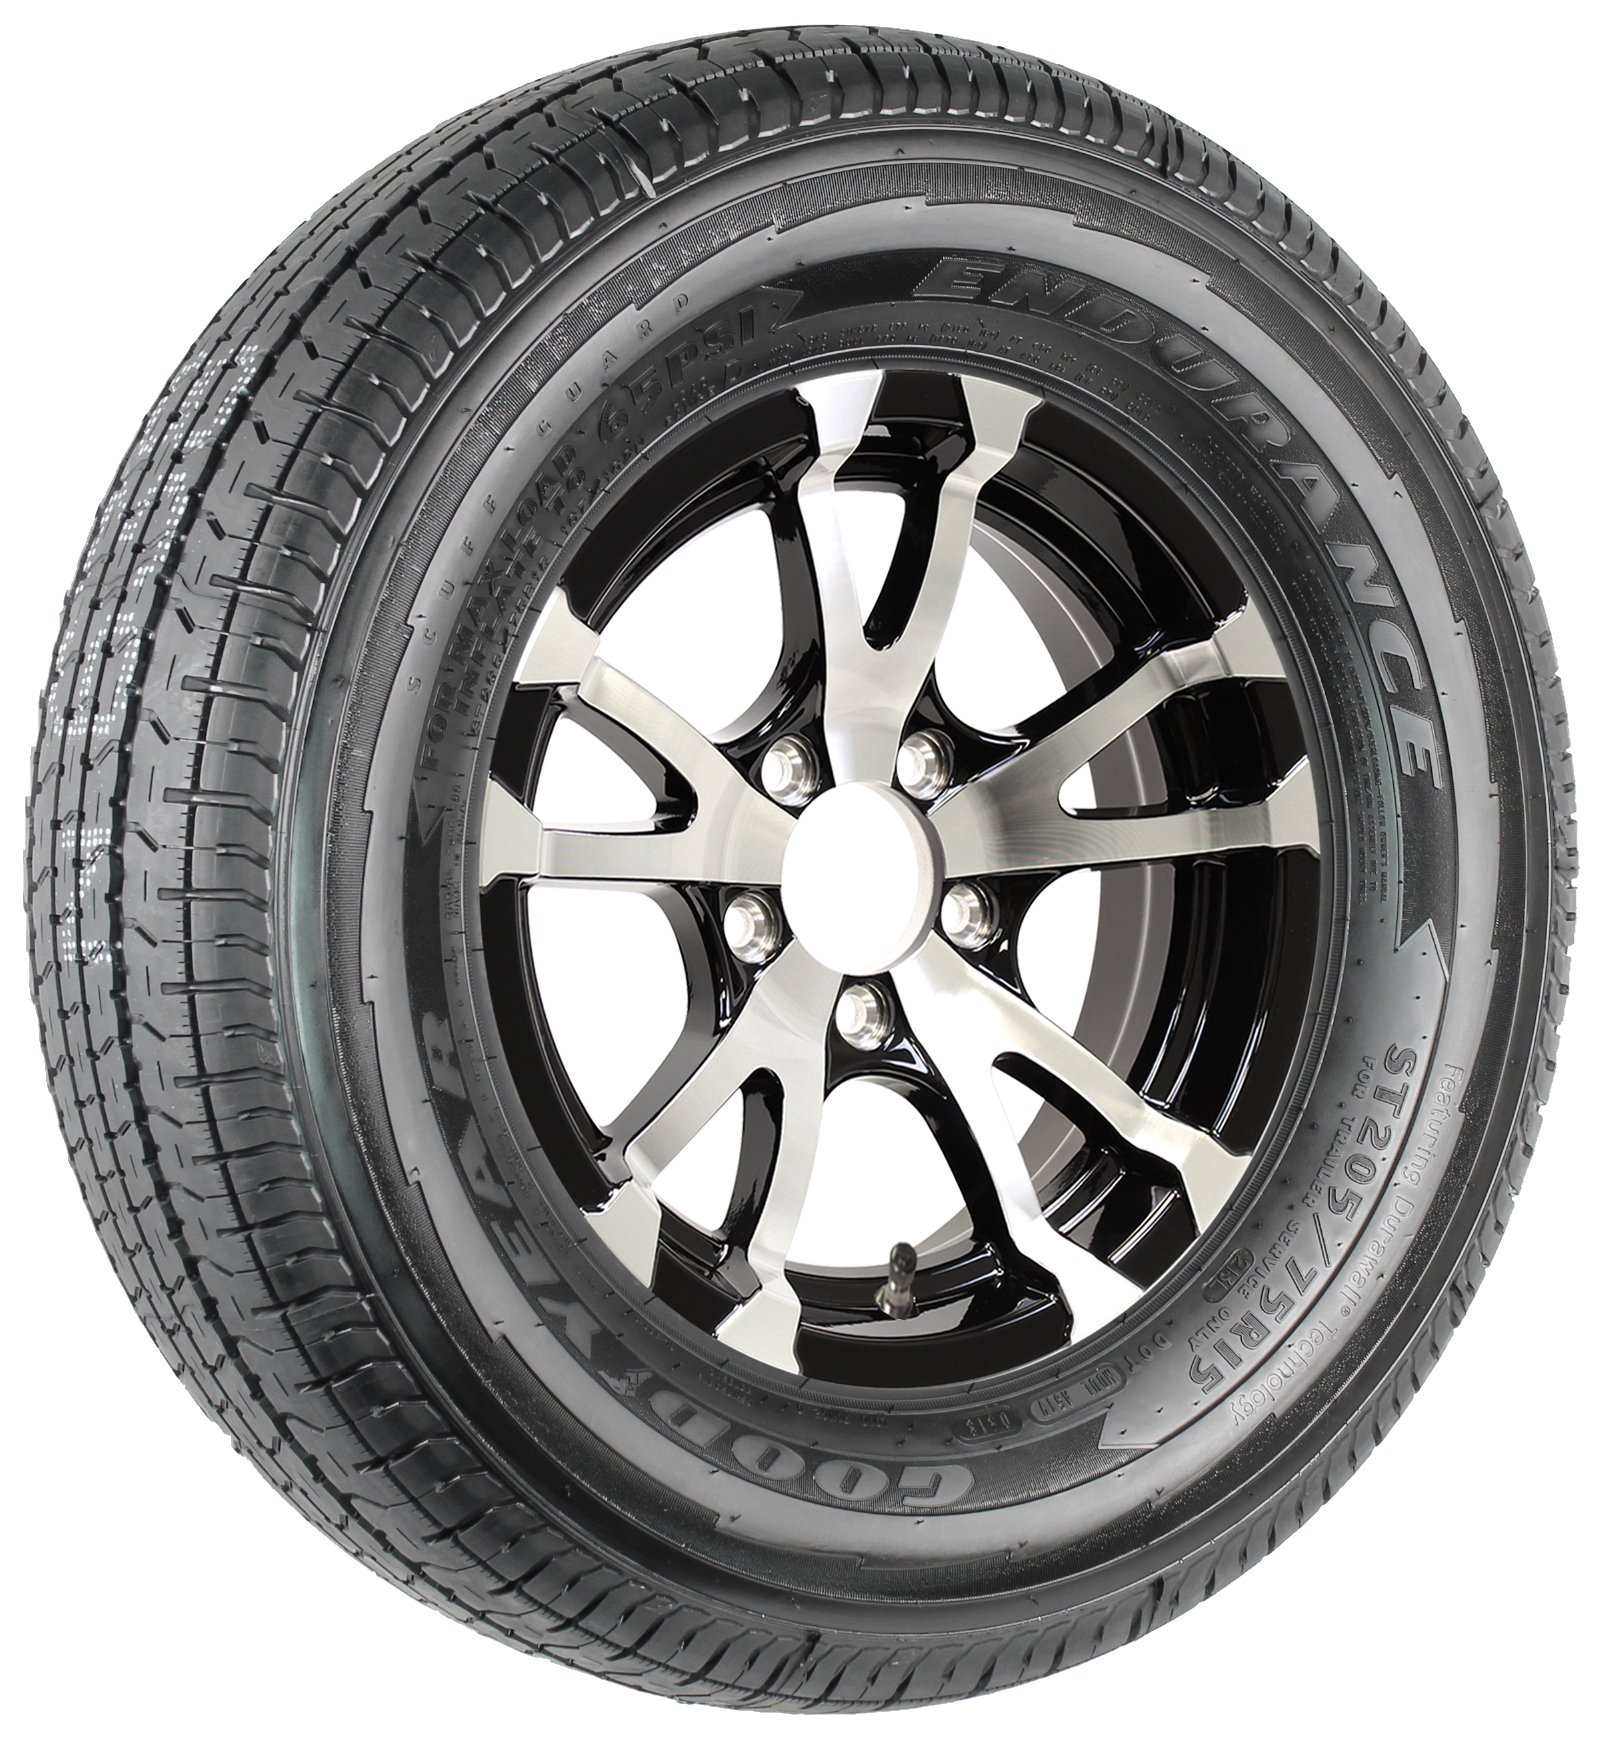 "Goodyear Endurance ST205/75R15 LRD Radial Tire on 15"" 5-Lug Avalanche Black Aluminum Assembly Image"